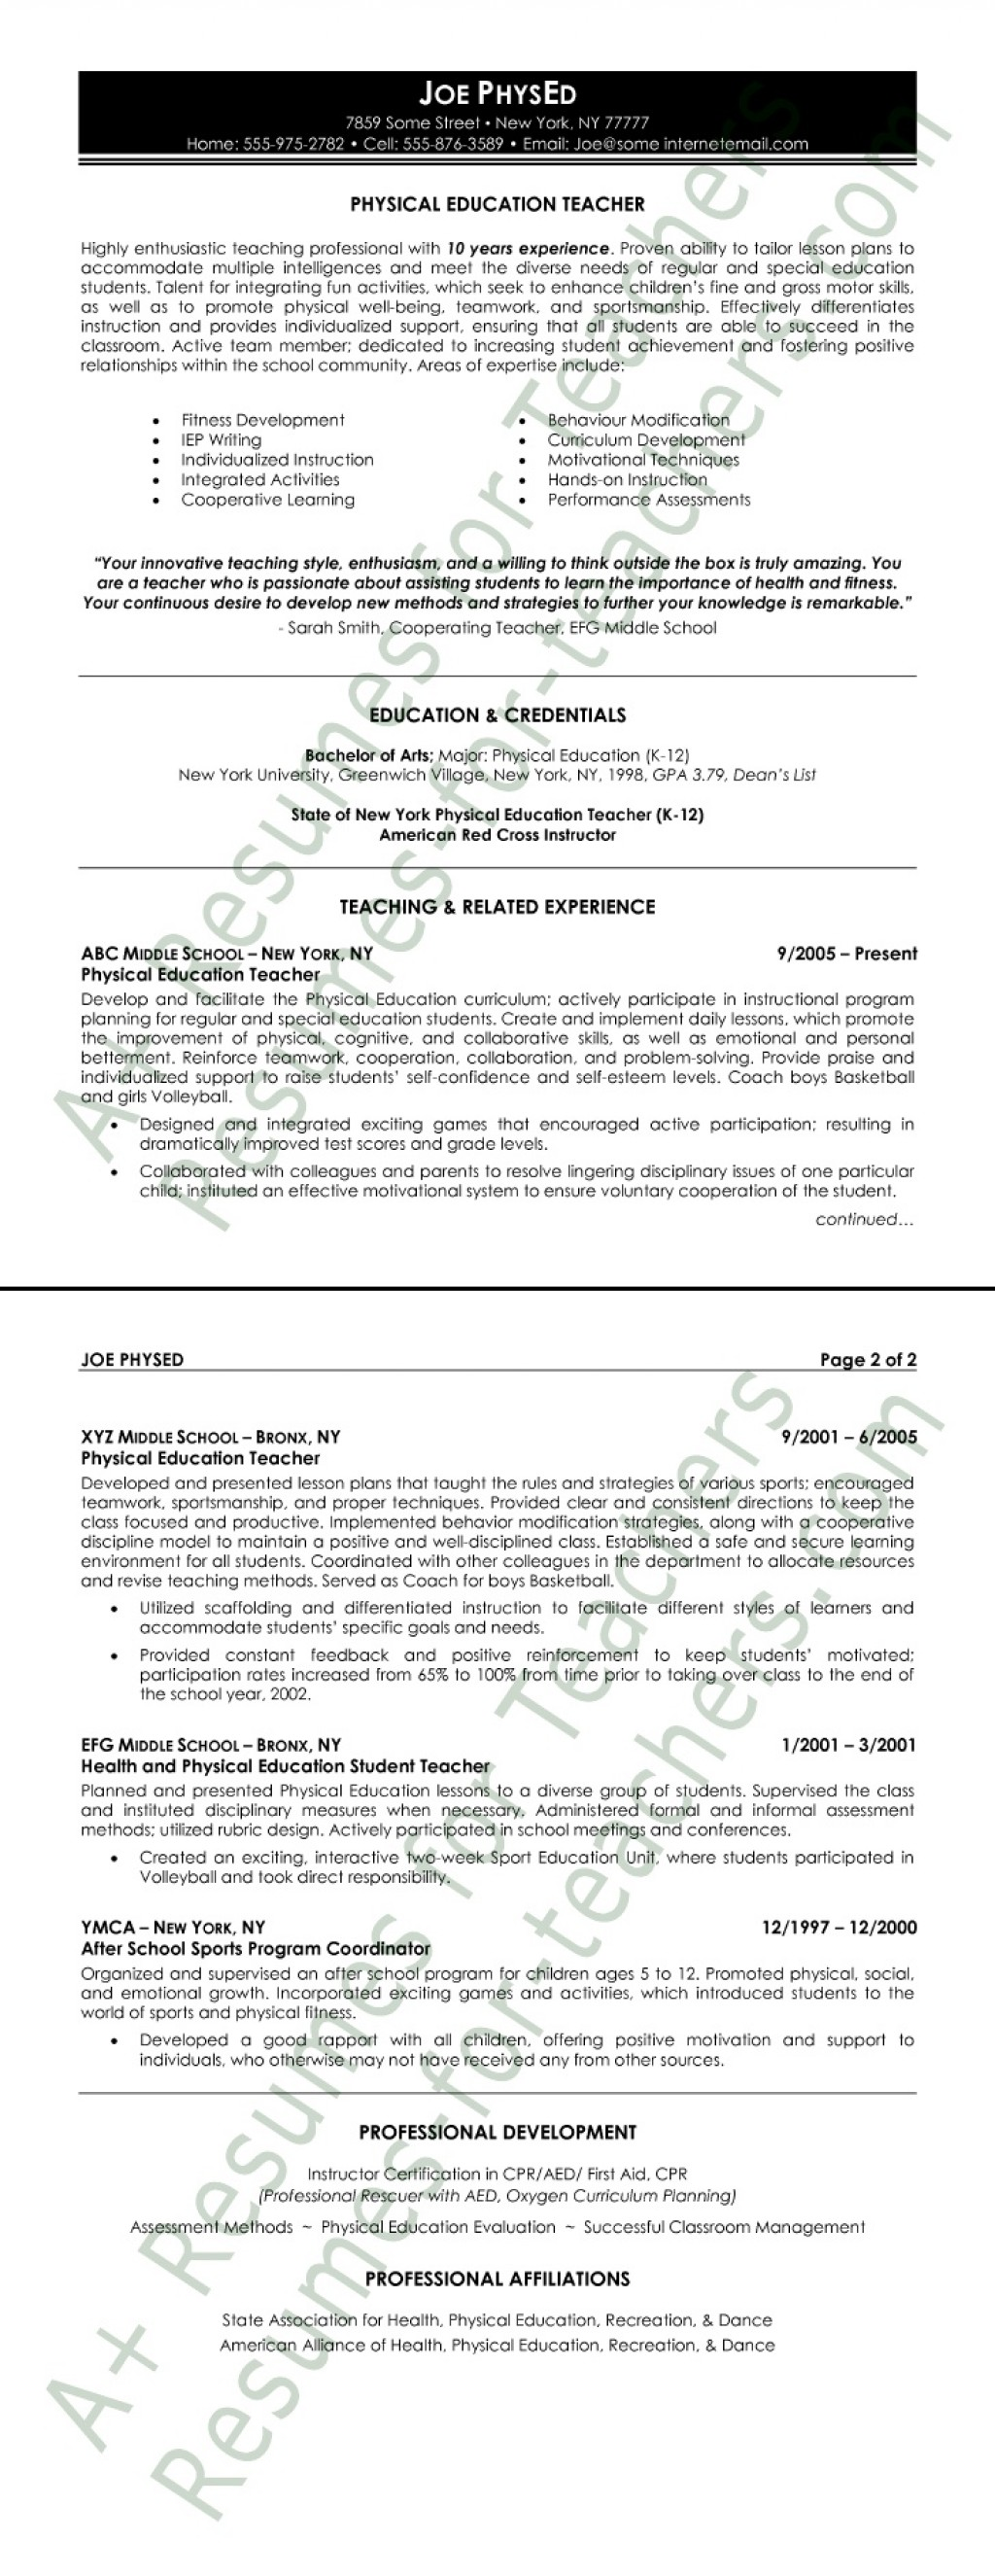 007 Physical Education Resume Sample Studymode Word Essay On Accountability In The Army Formidable 1000 Importance Of Large